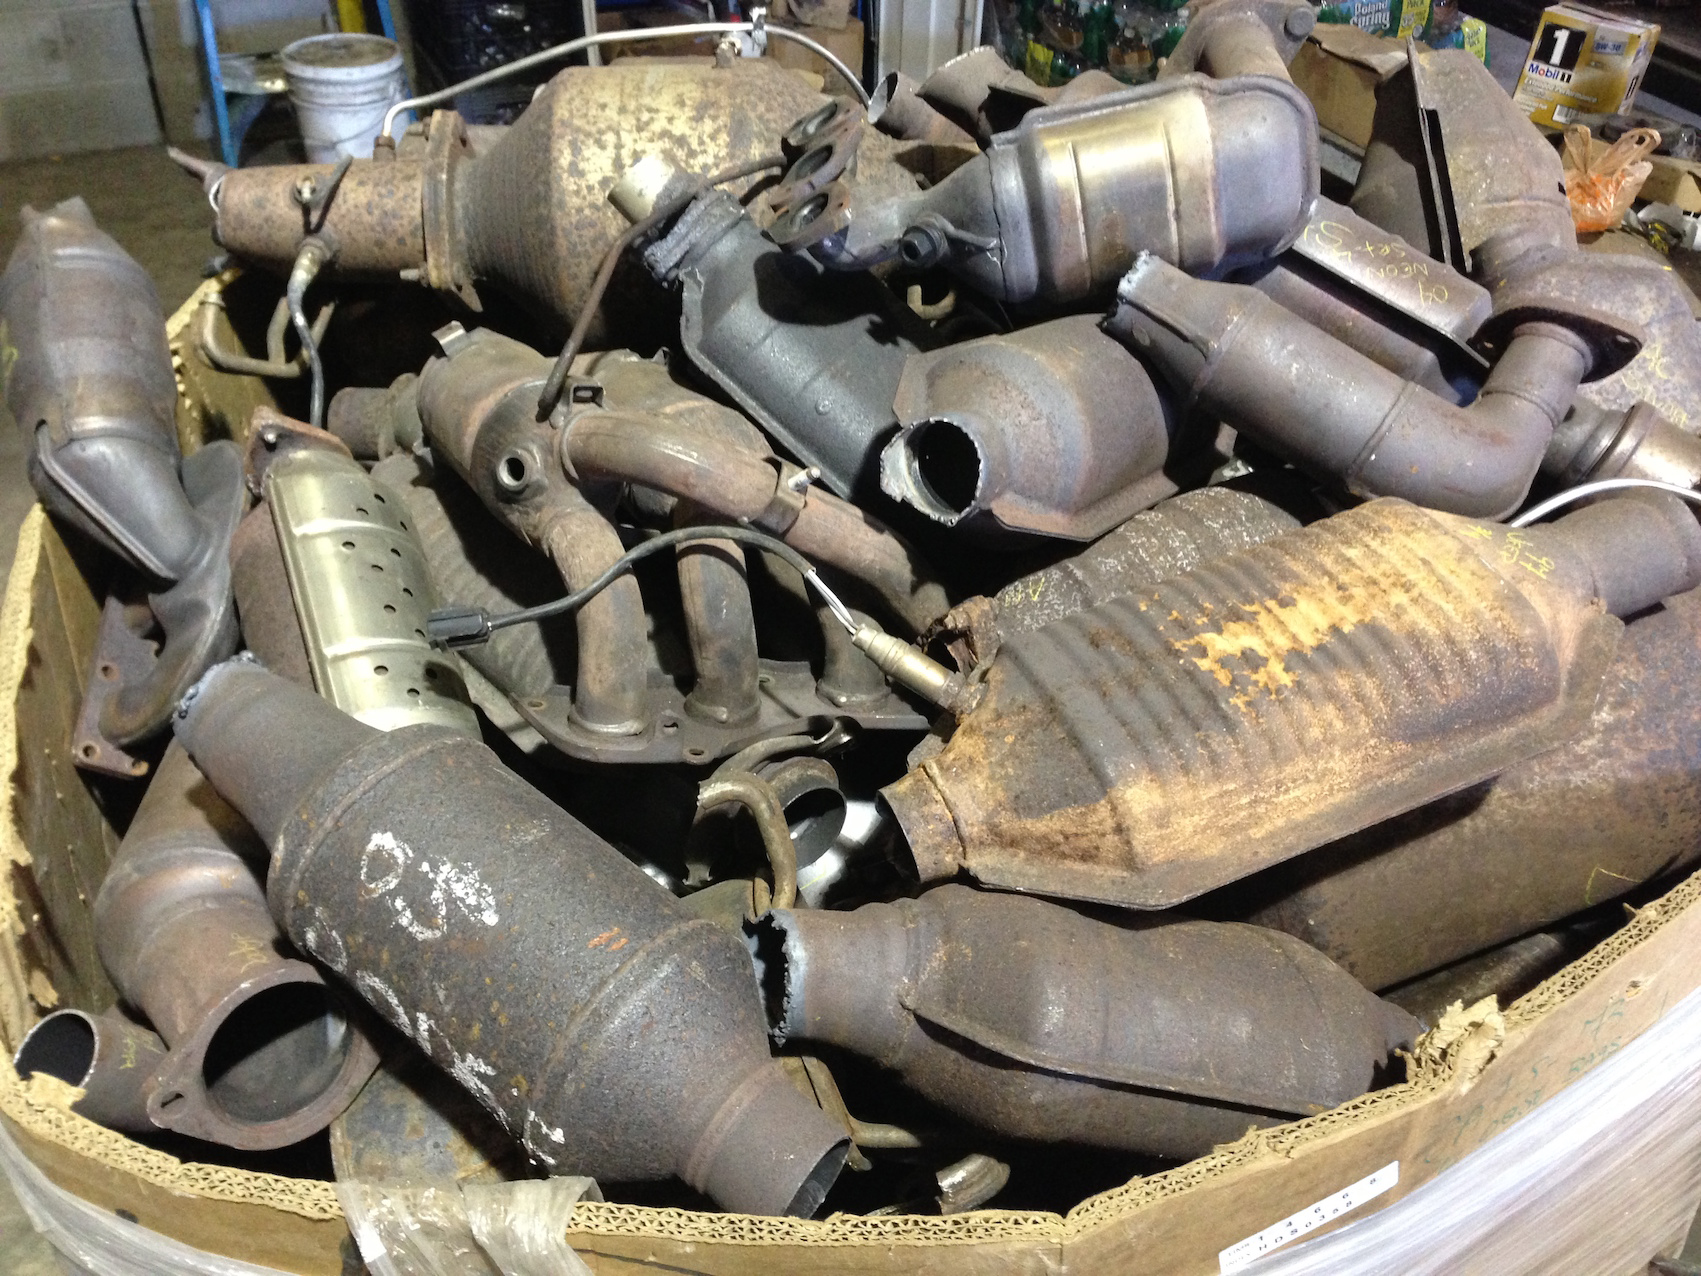 Catalytic converters stolen by criminal gangs